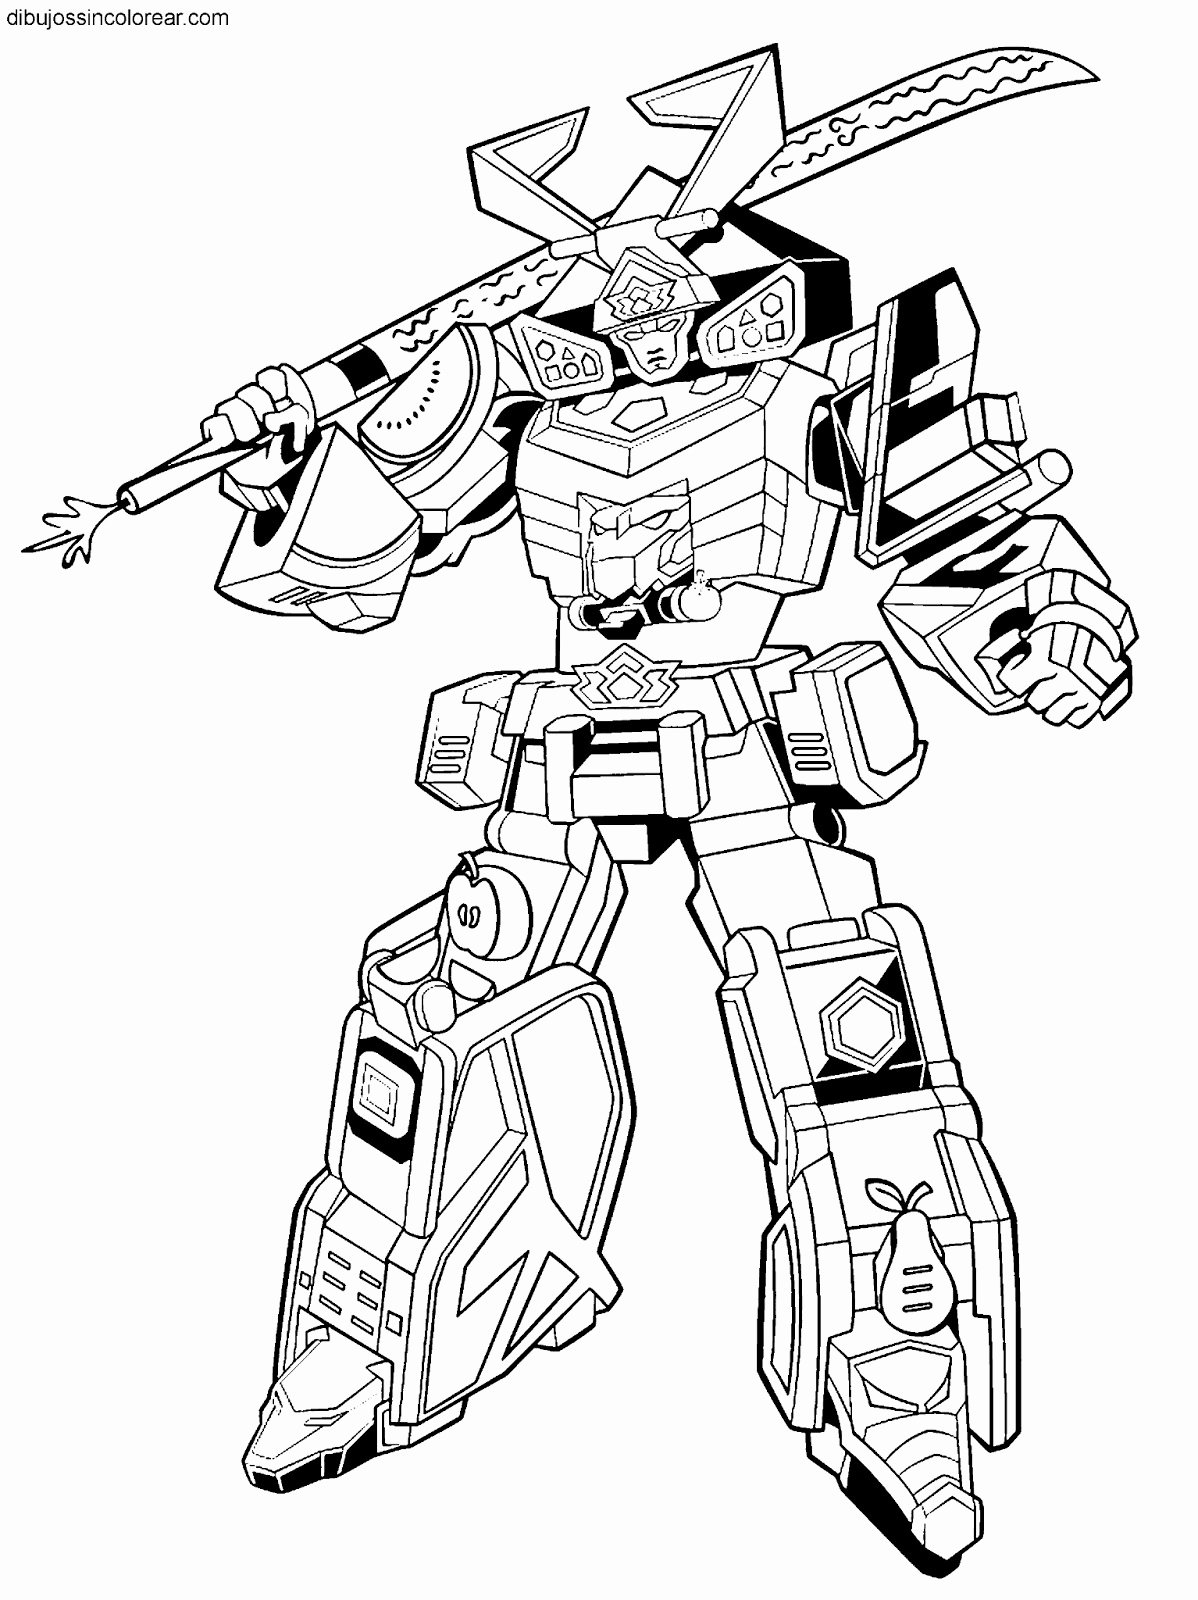 Megazord Coloring Pages At Getcolorings